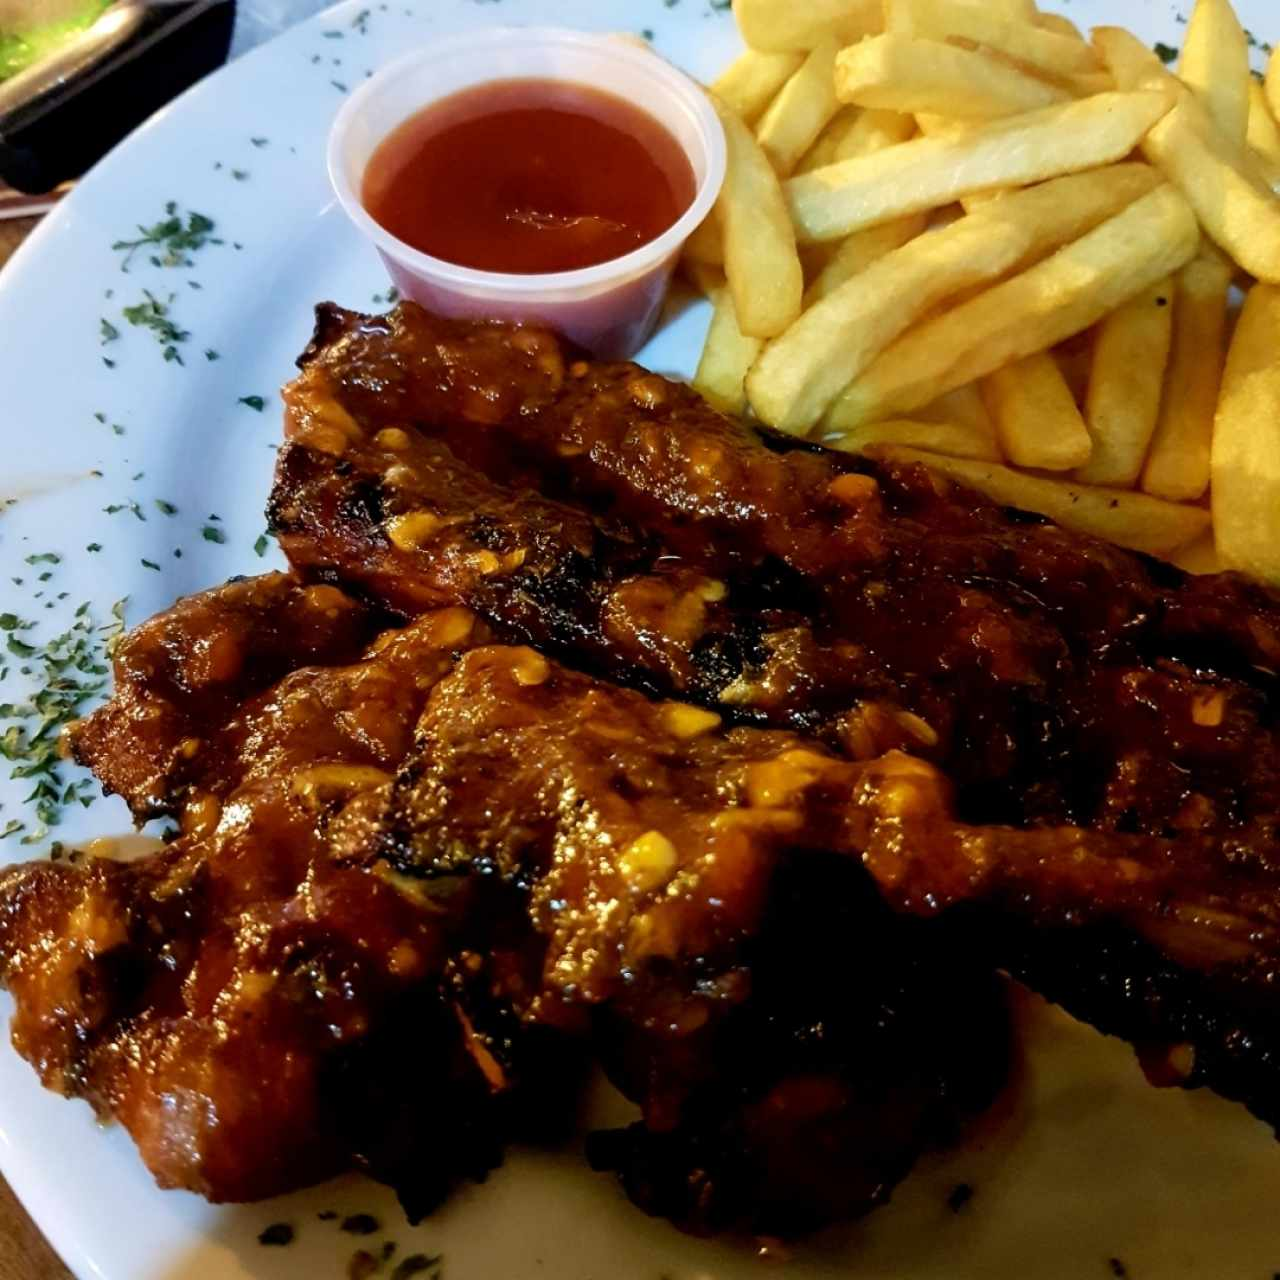 Costillas con papas fritas